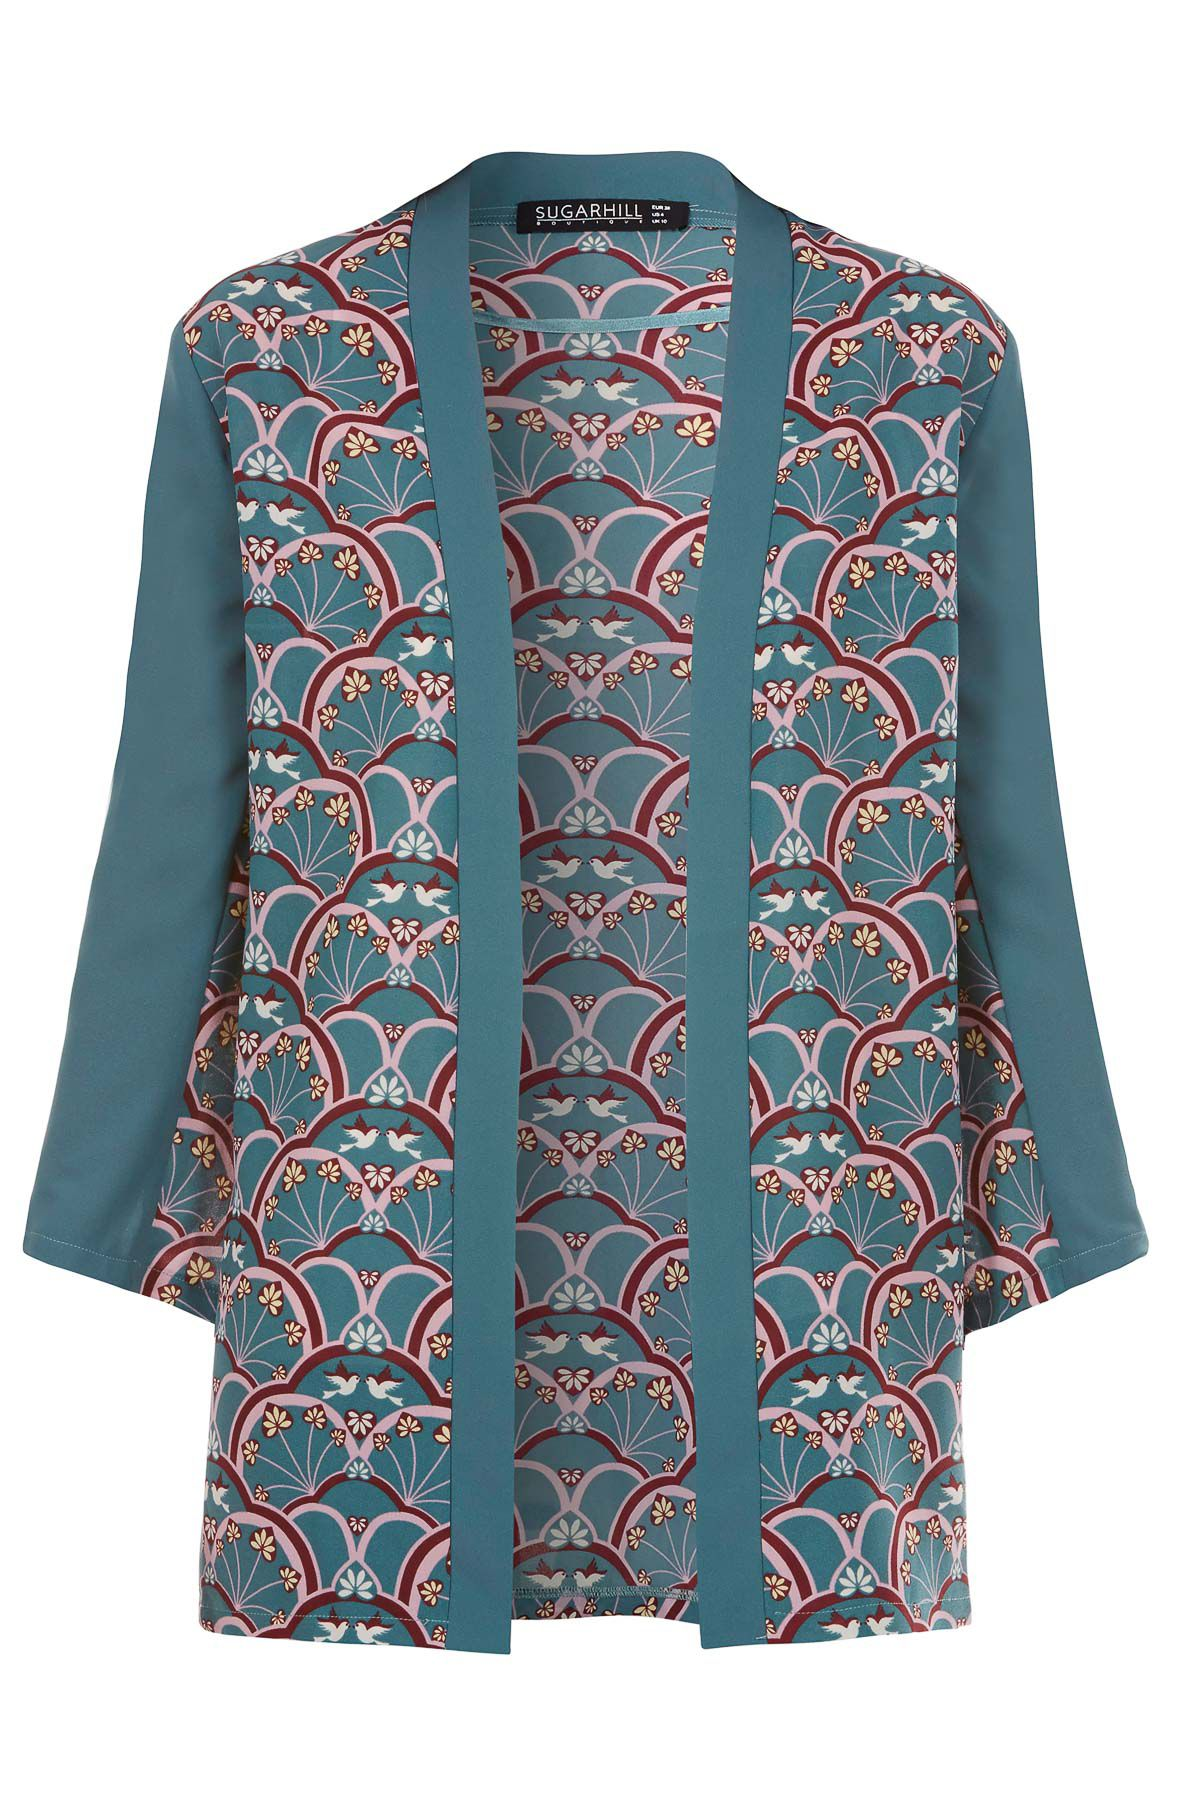 Sugarhill Boutique Deco Bird Kimono Green £30.00 AT vintagedancer.com